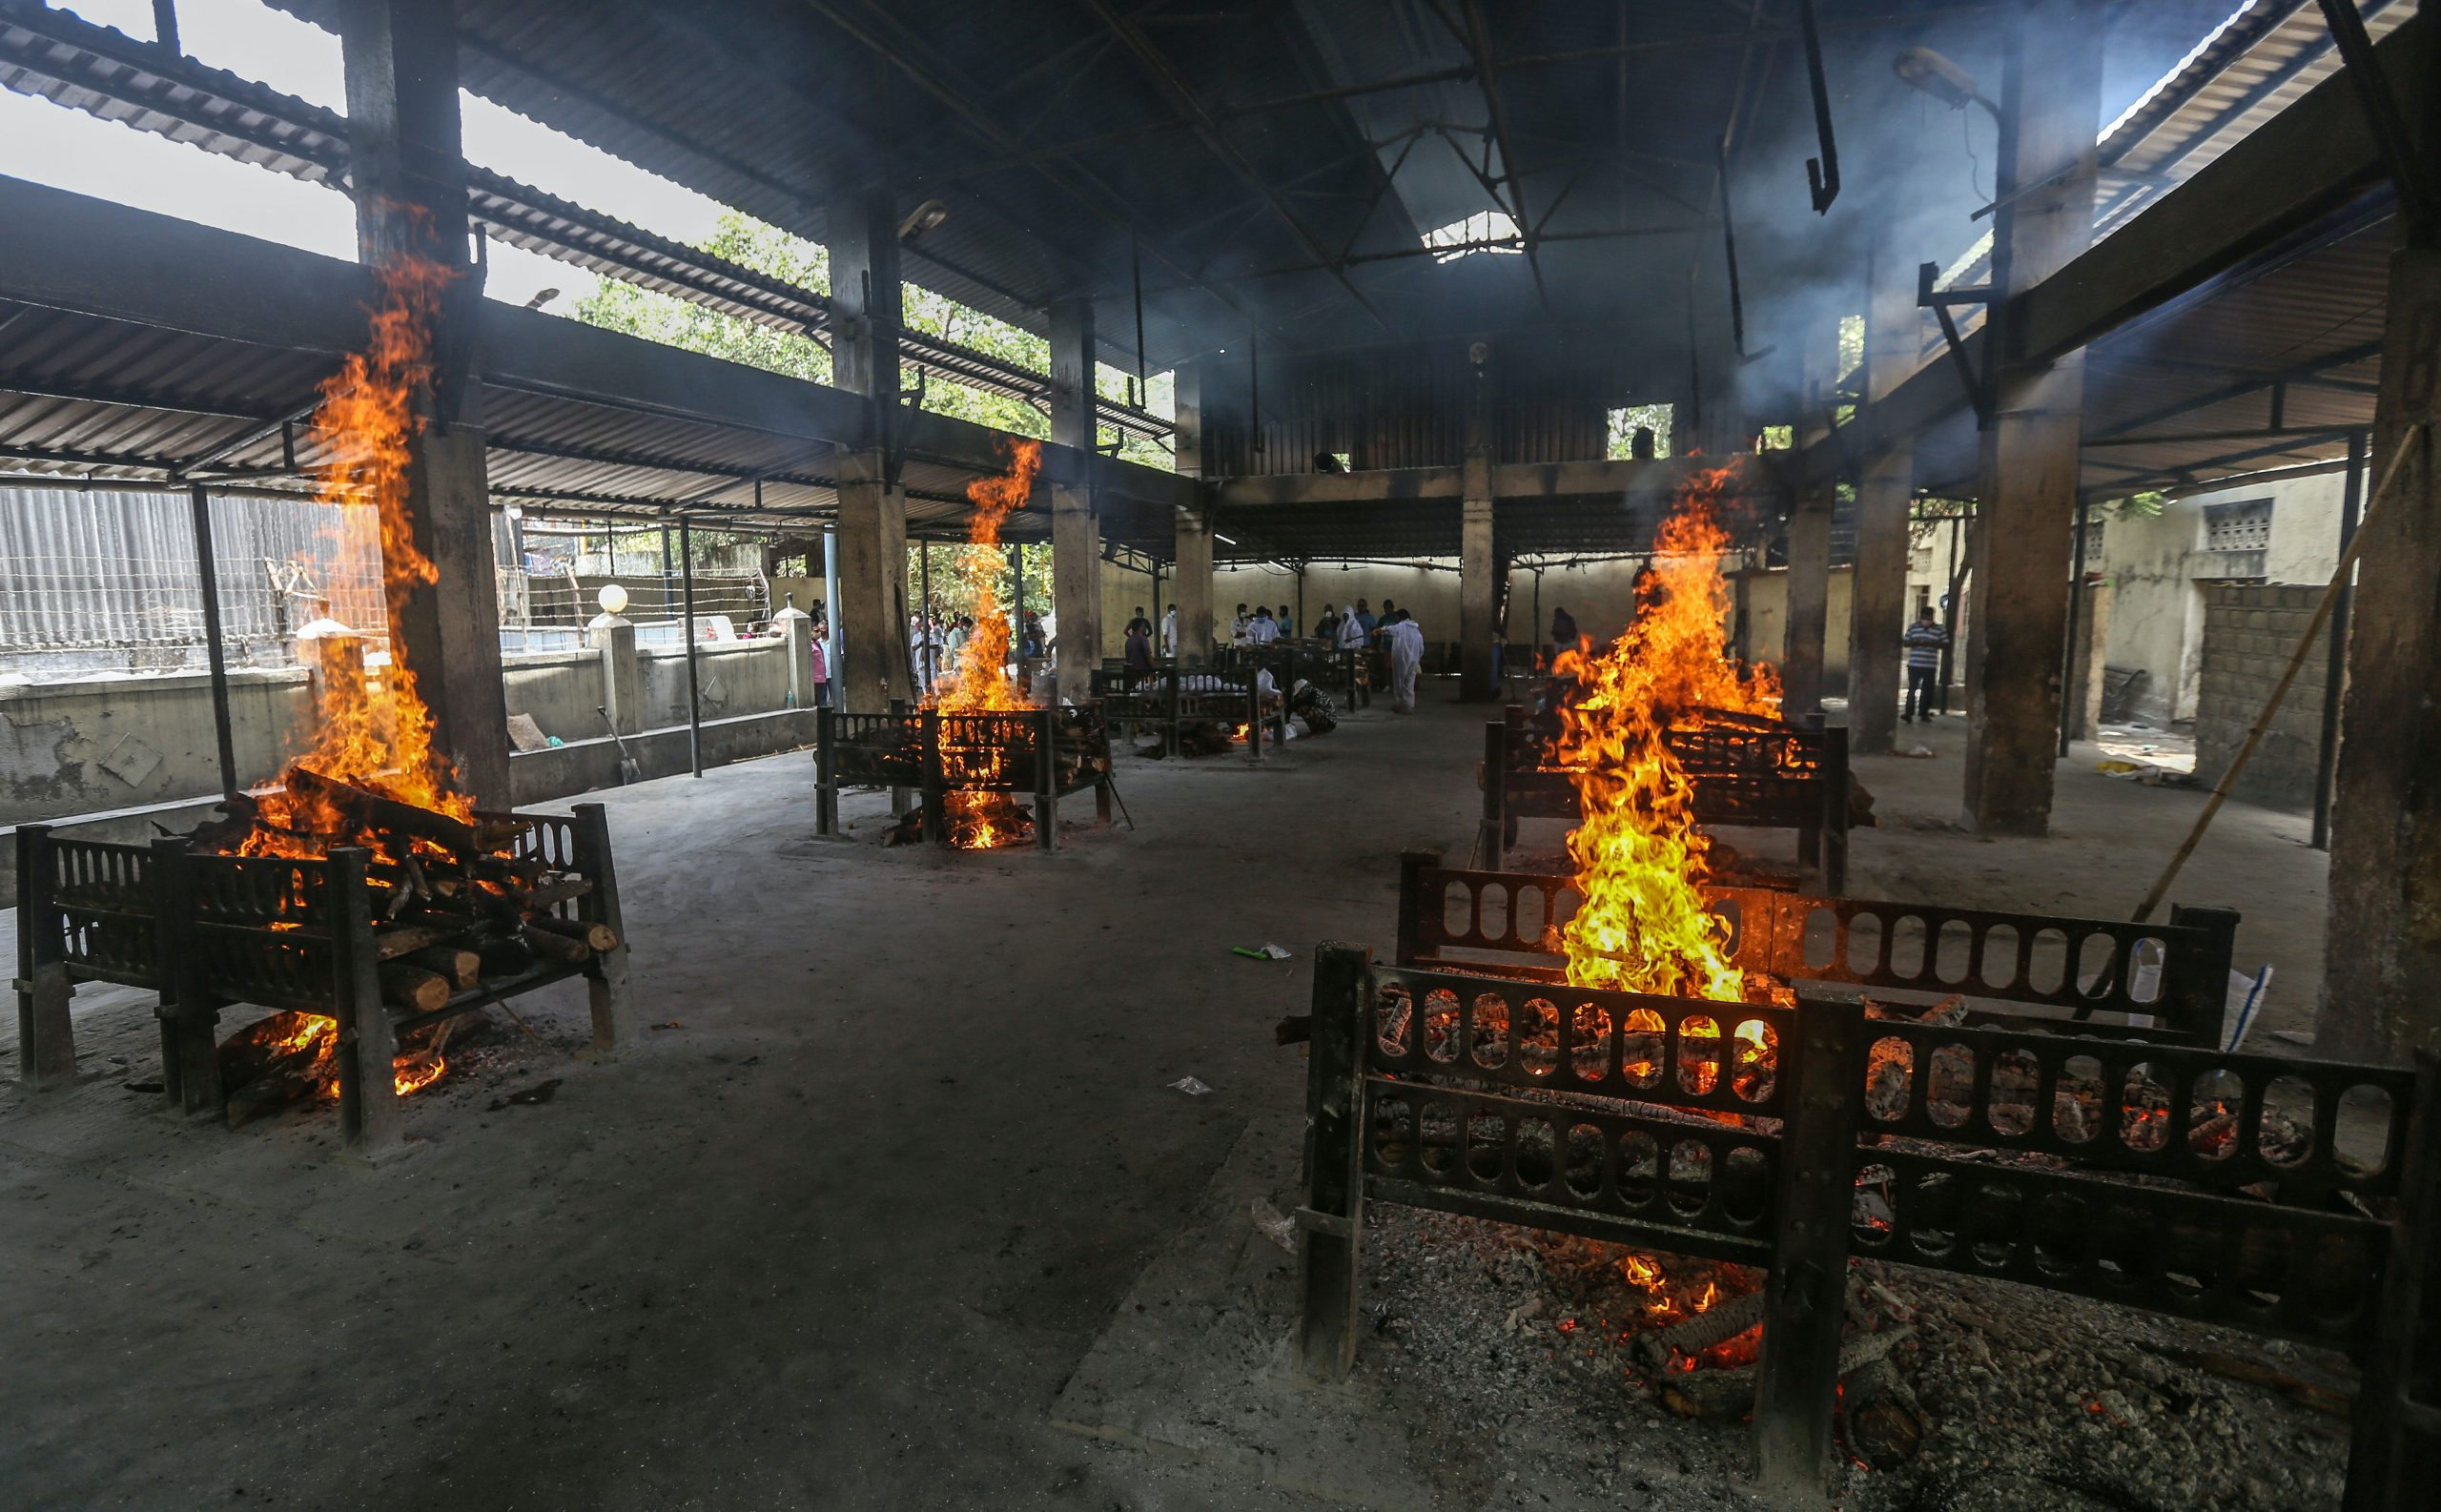 Piles of logs burn on small platforms positioned around a large, semi-open hall.